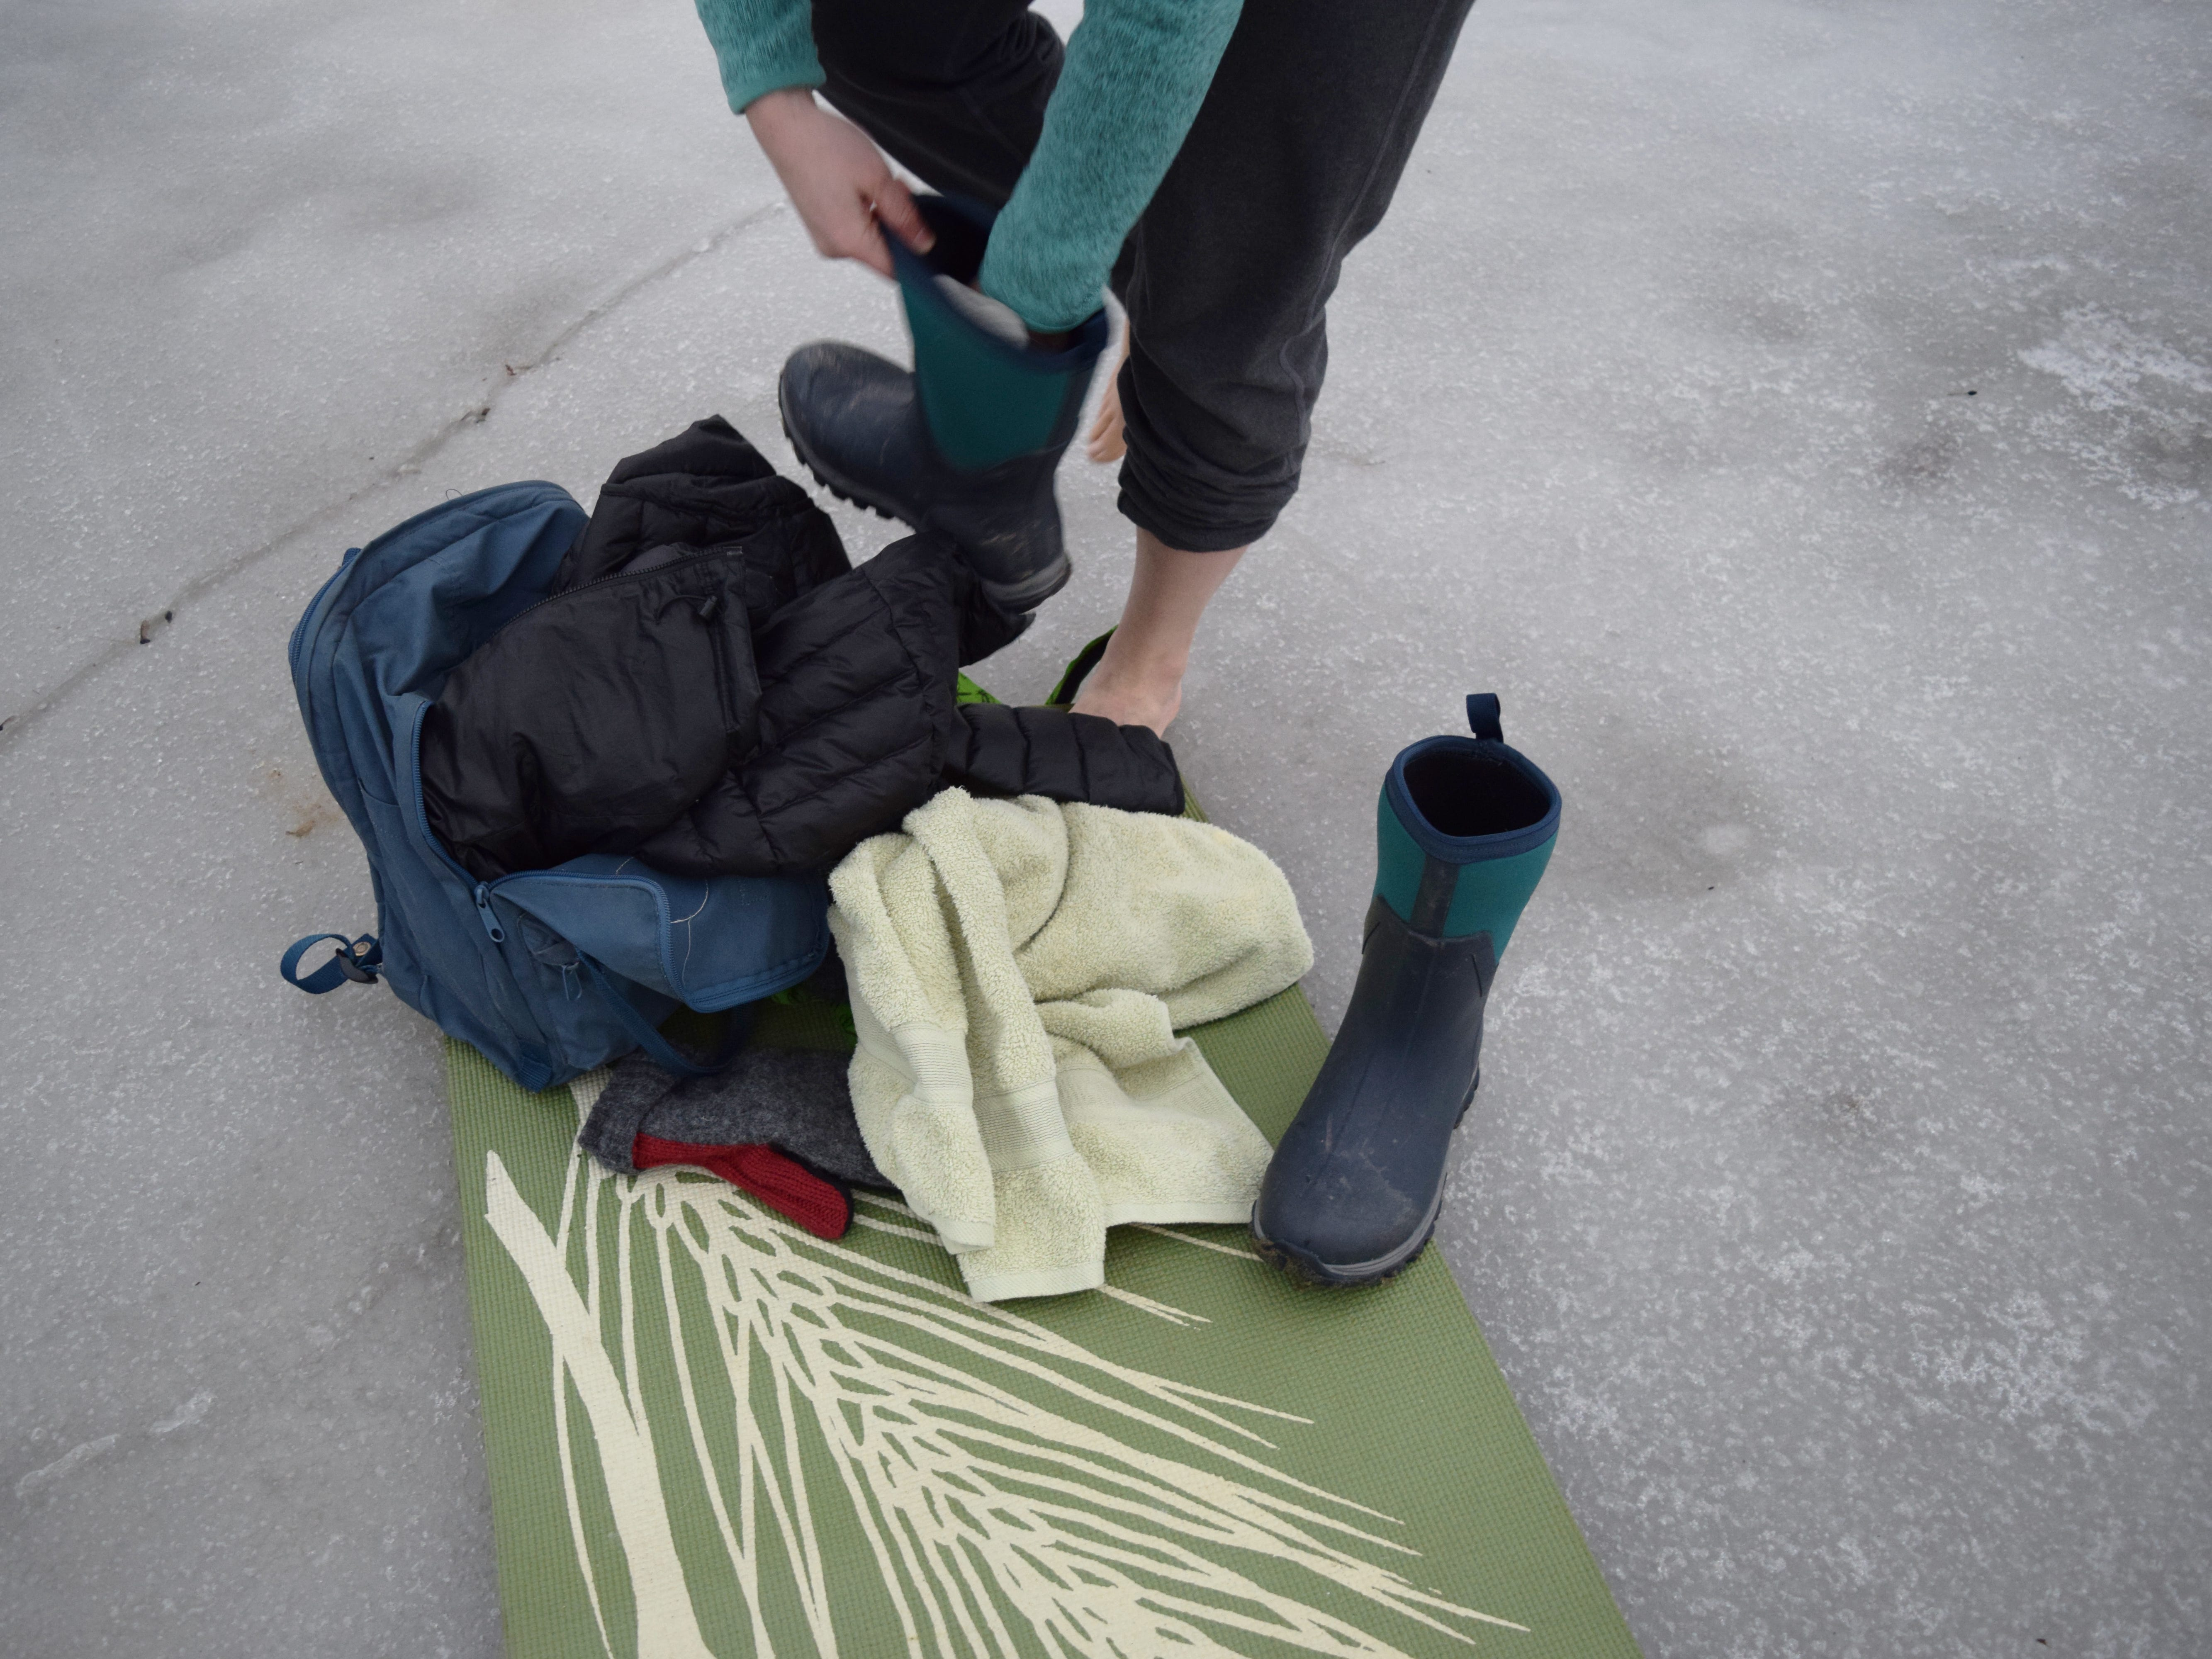 Elise Schadler of Burlington scoots into warm boots after having fully immersed herself in Lake Champlain on Feb. 21, 2018.